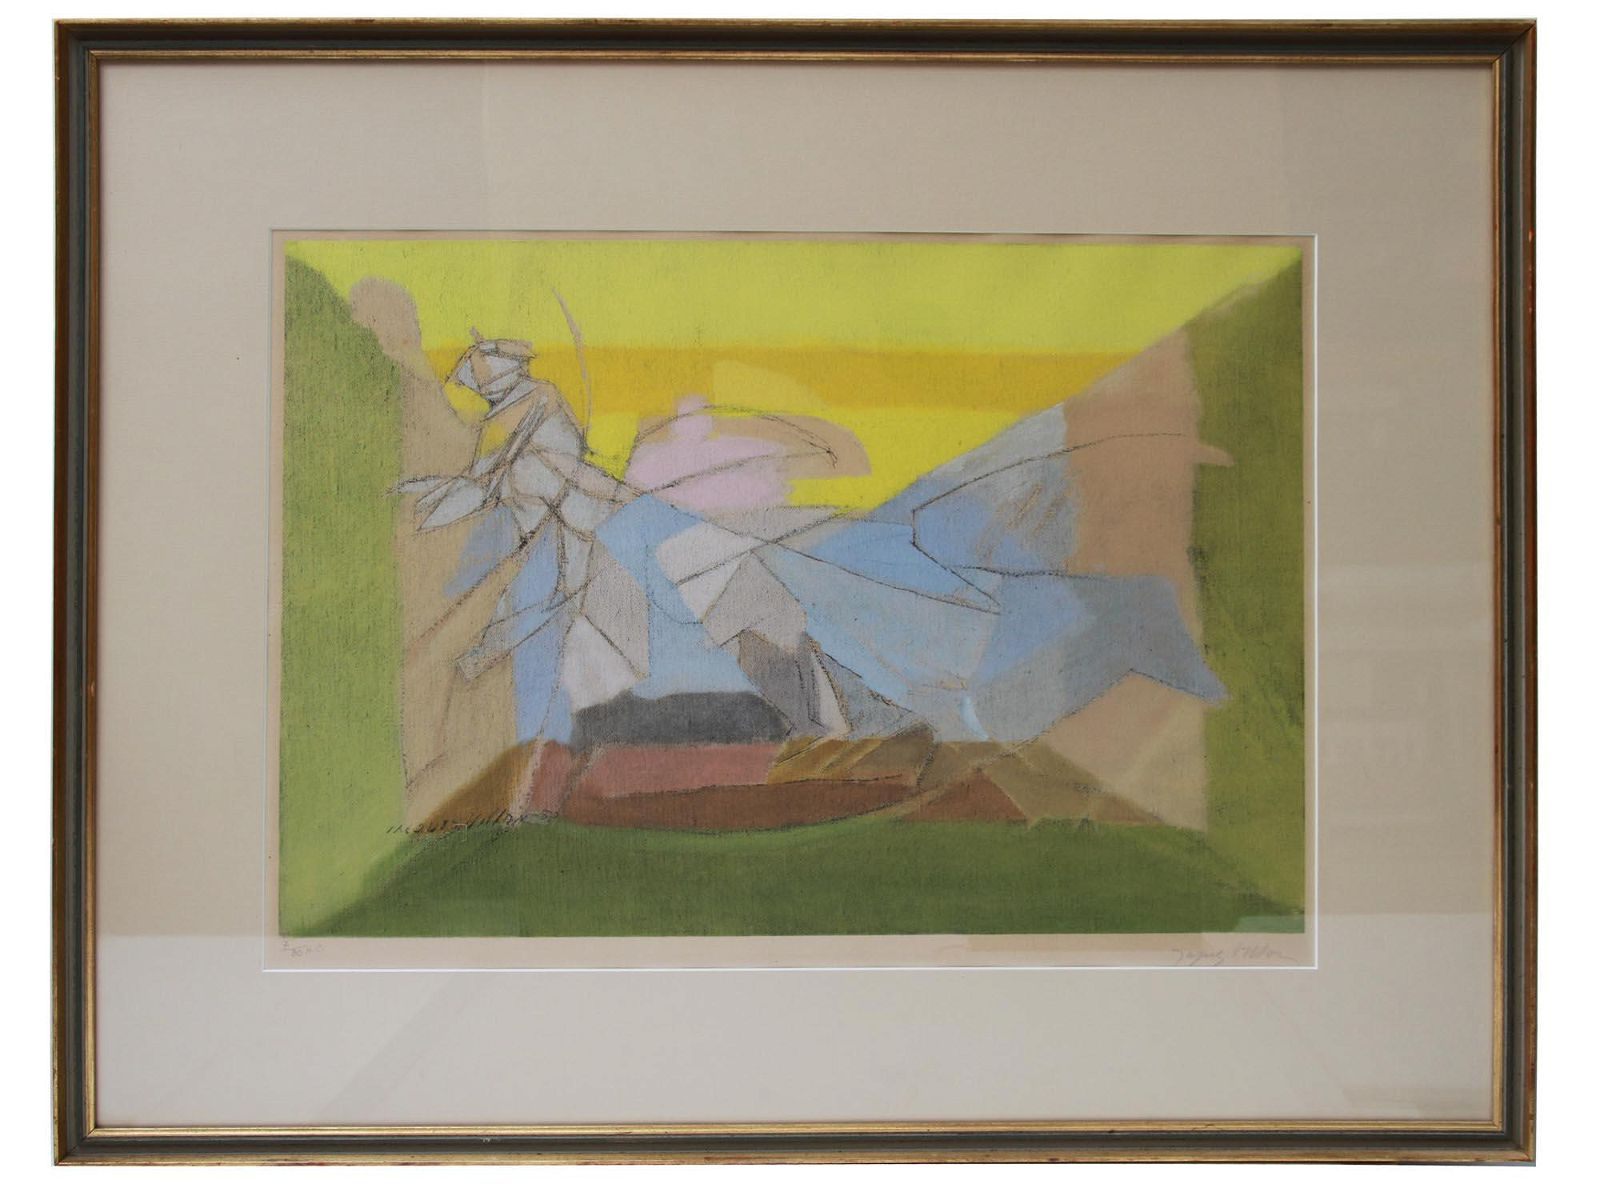 FRENCH COLOR LITHOGRAPH BY JACQUES VILLON